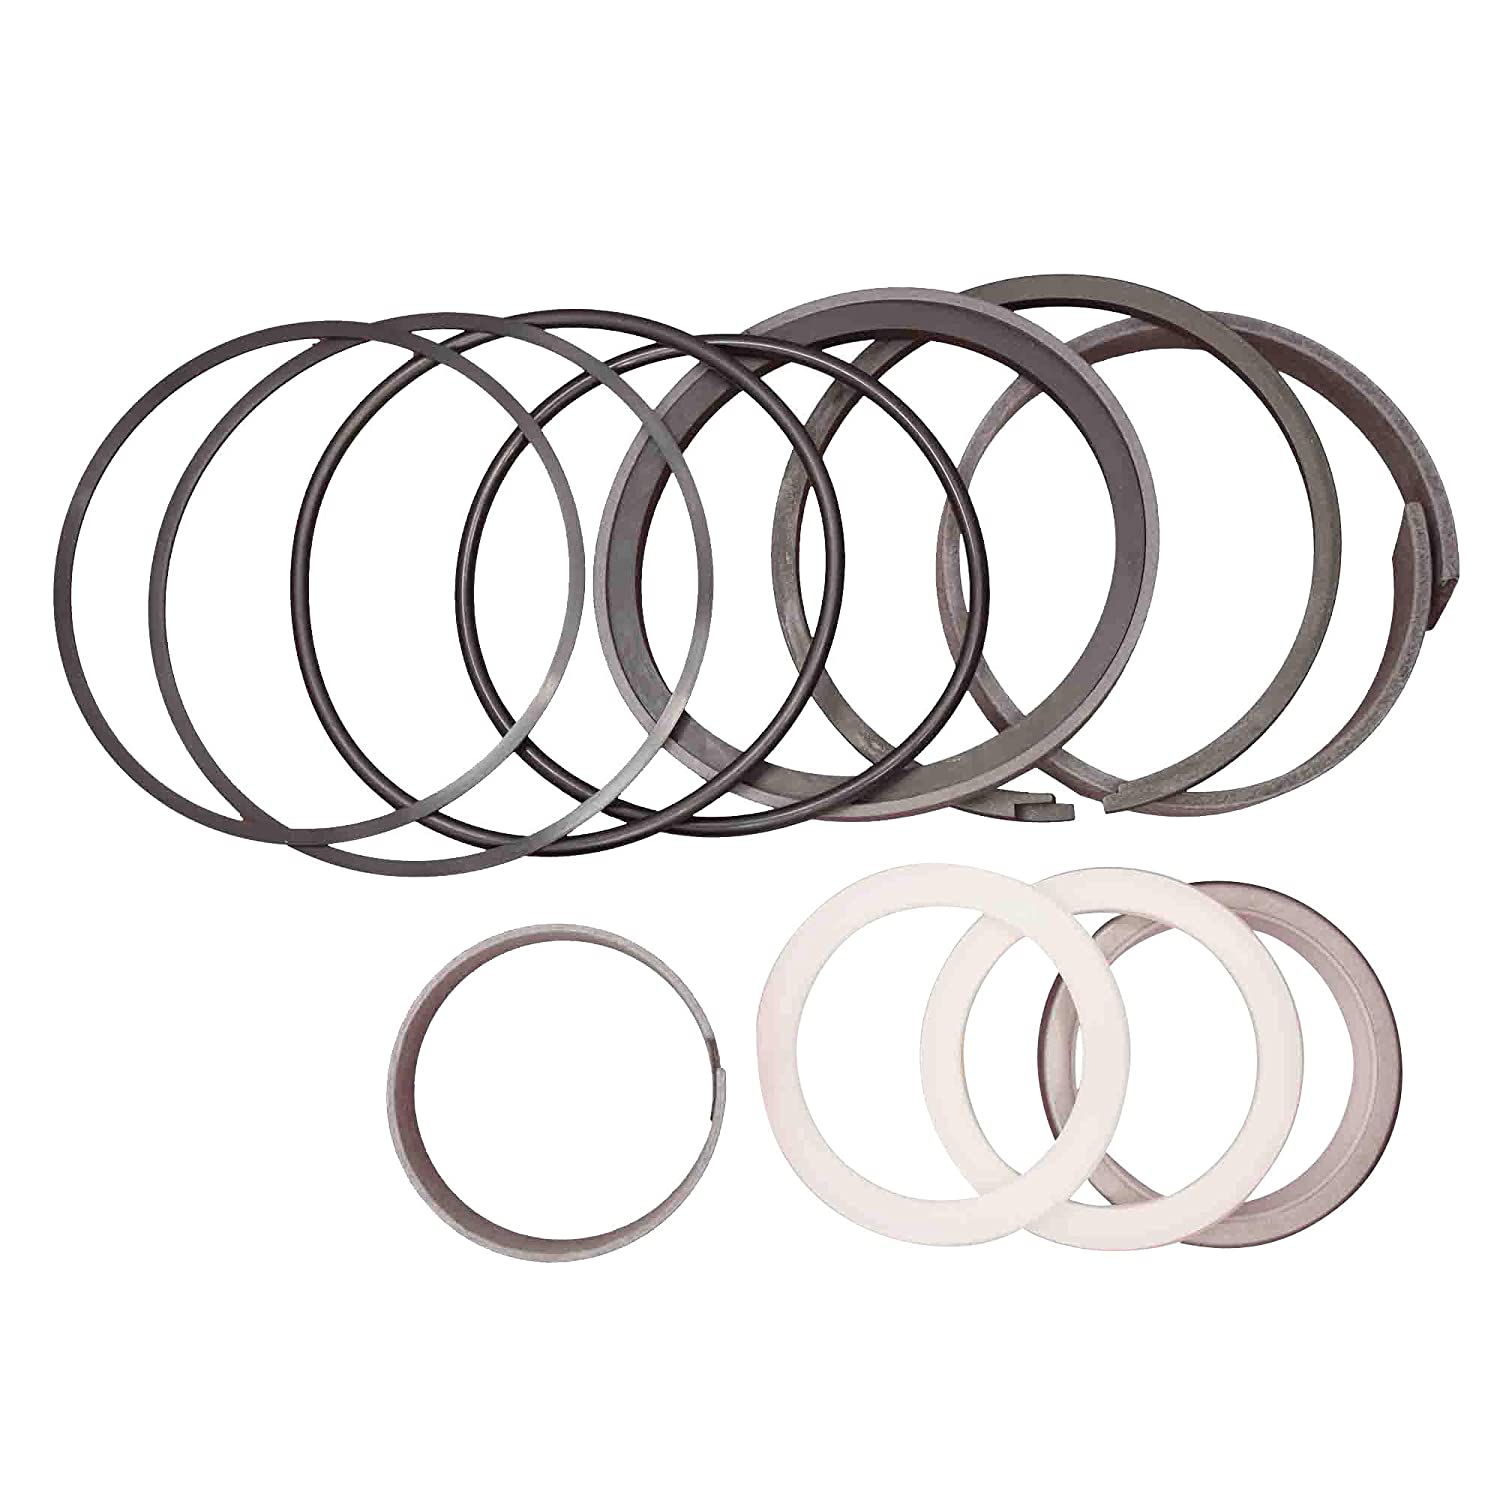 Tornado Heavy Equipment Parts Fits Case 191747A1 Hydraulic Cylinder Seal Kit